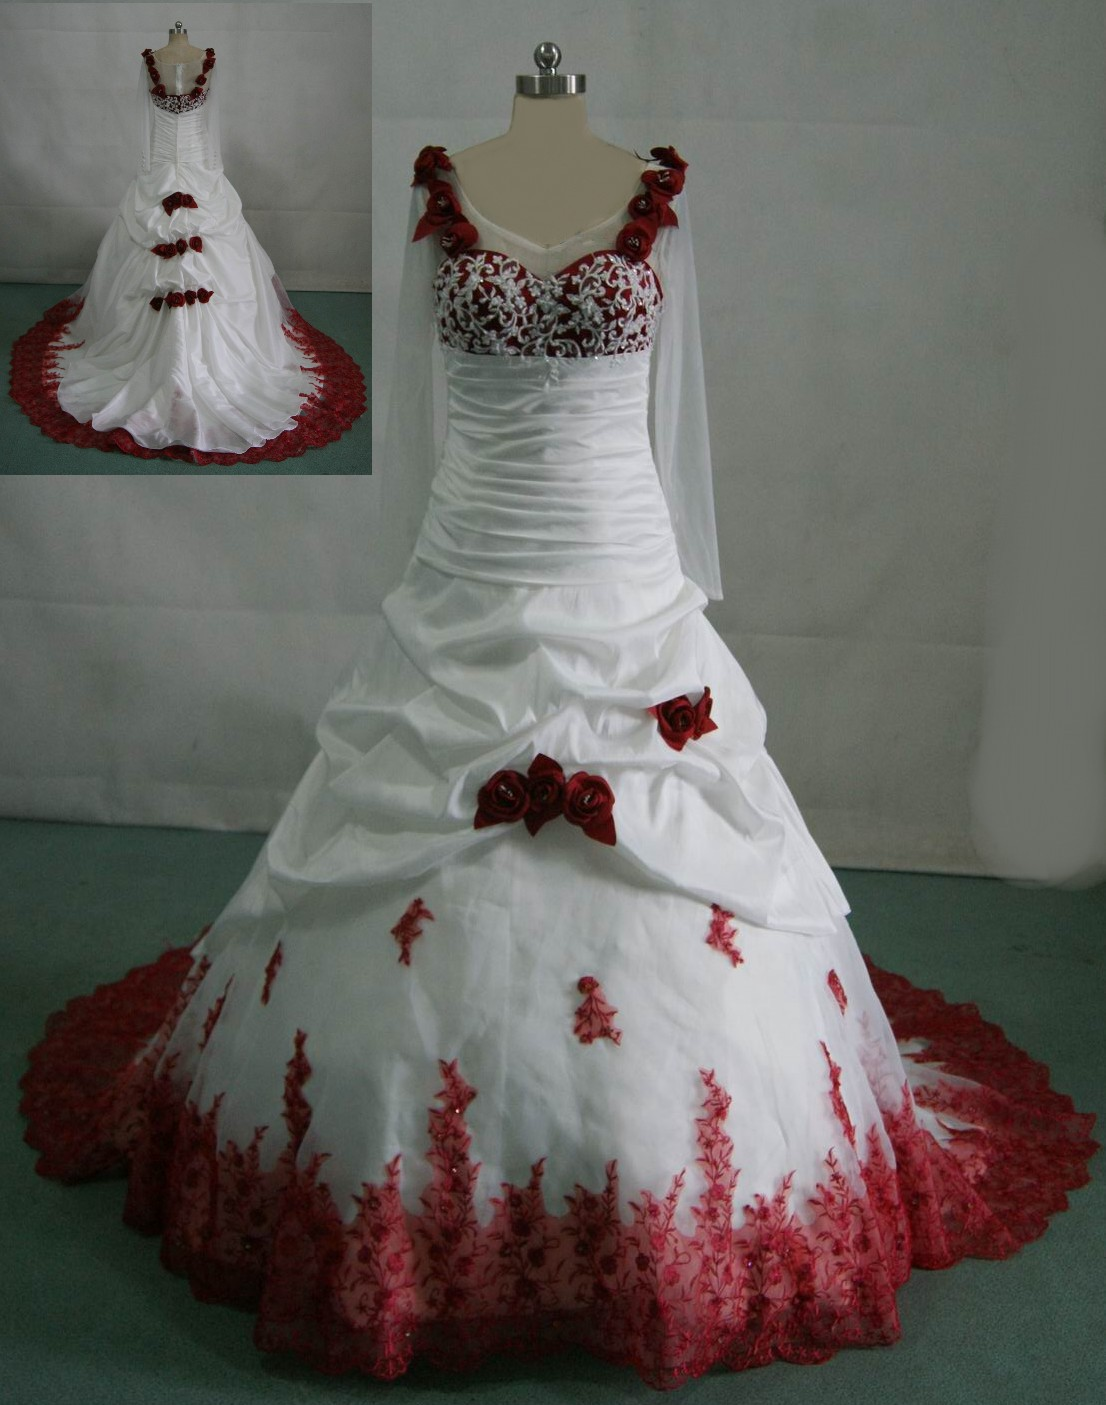 Rental Bridal Gown. Should I take a Bridal Gown for rent?